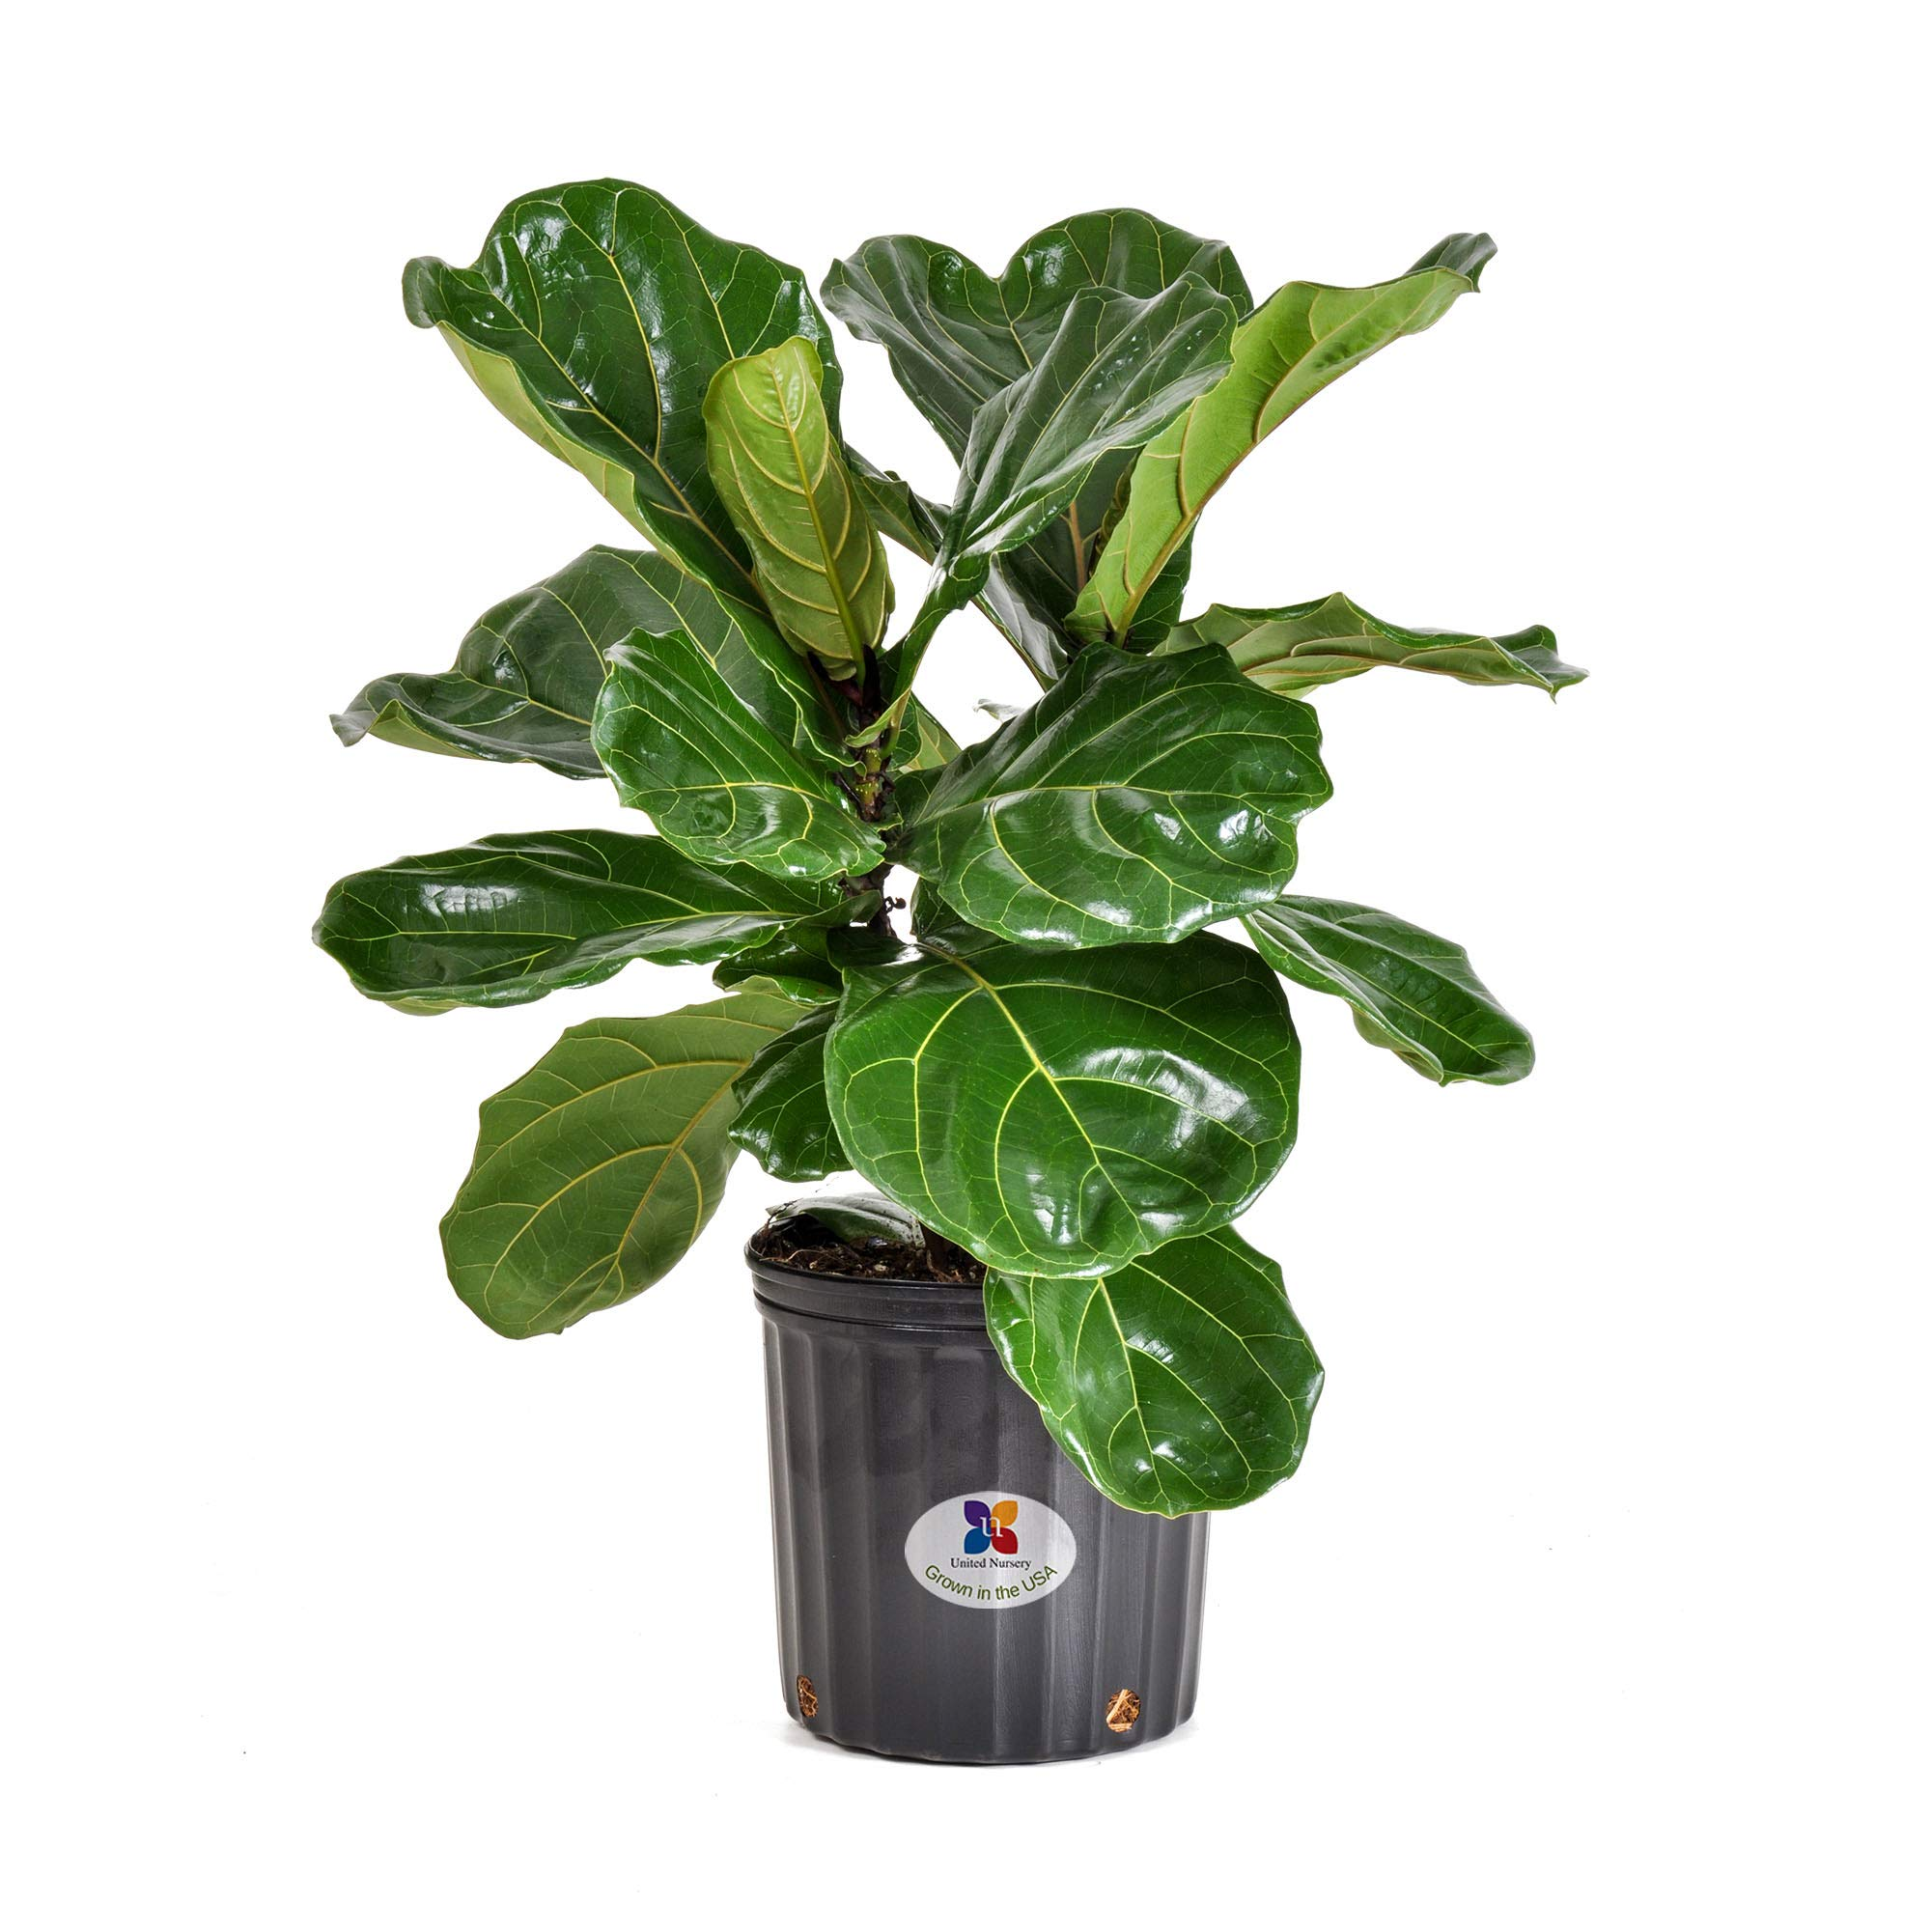 United Nursery Ficus Lyrata Tree Live One Stem Indoor Plant Fiddle-Leaf Fig 32'' Shipping Size Fresh in Grower 9.25'' Pot from Our Florida Farm